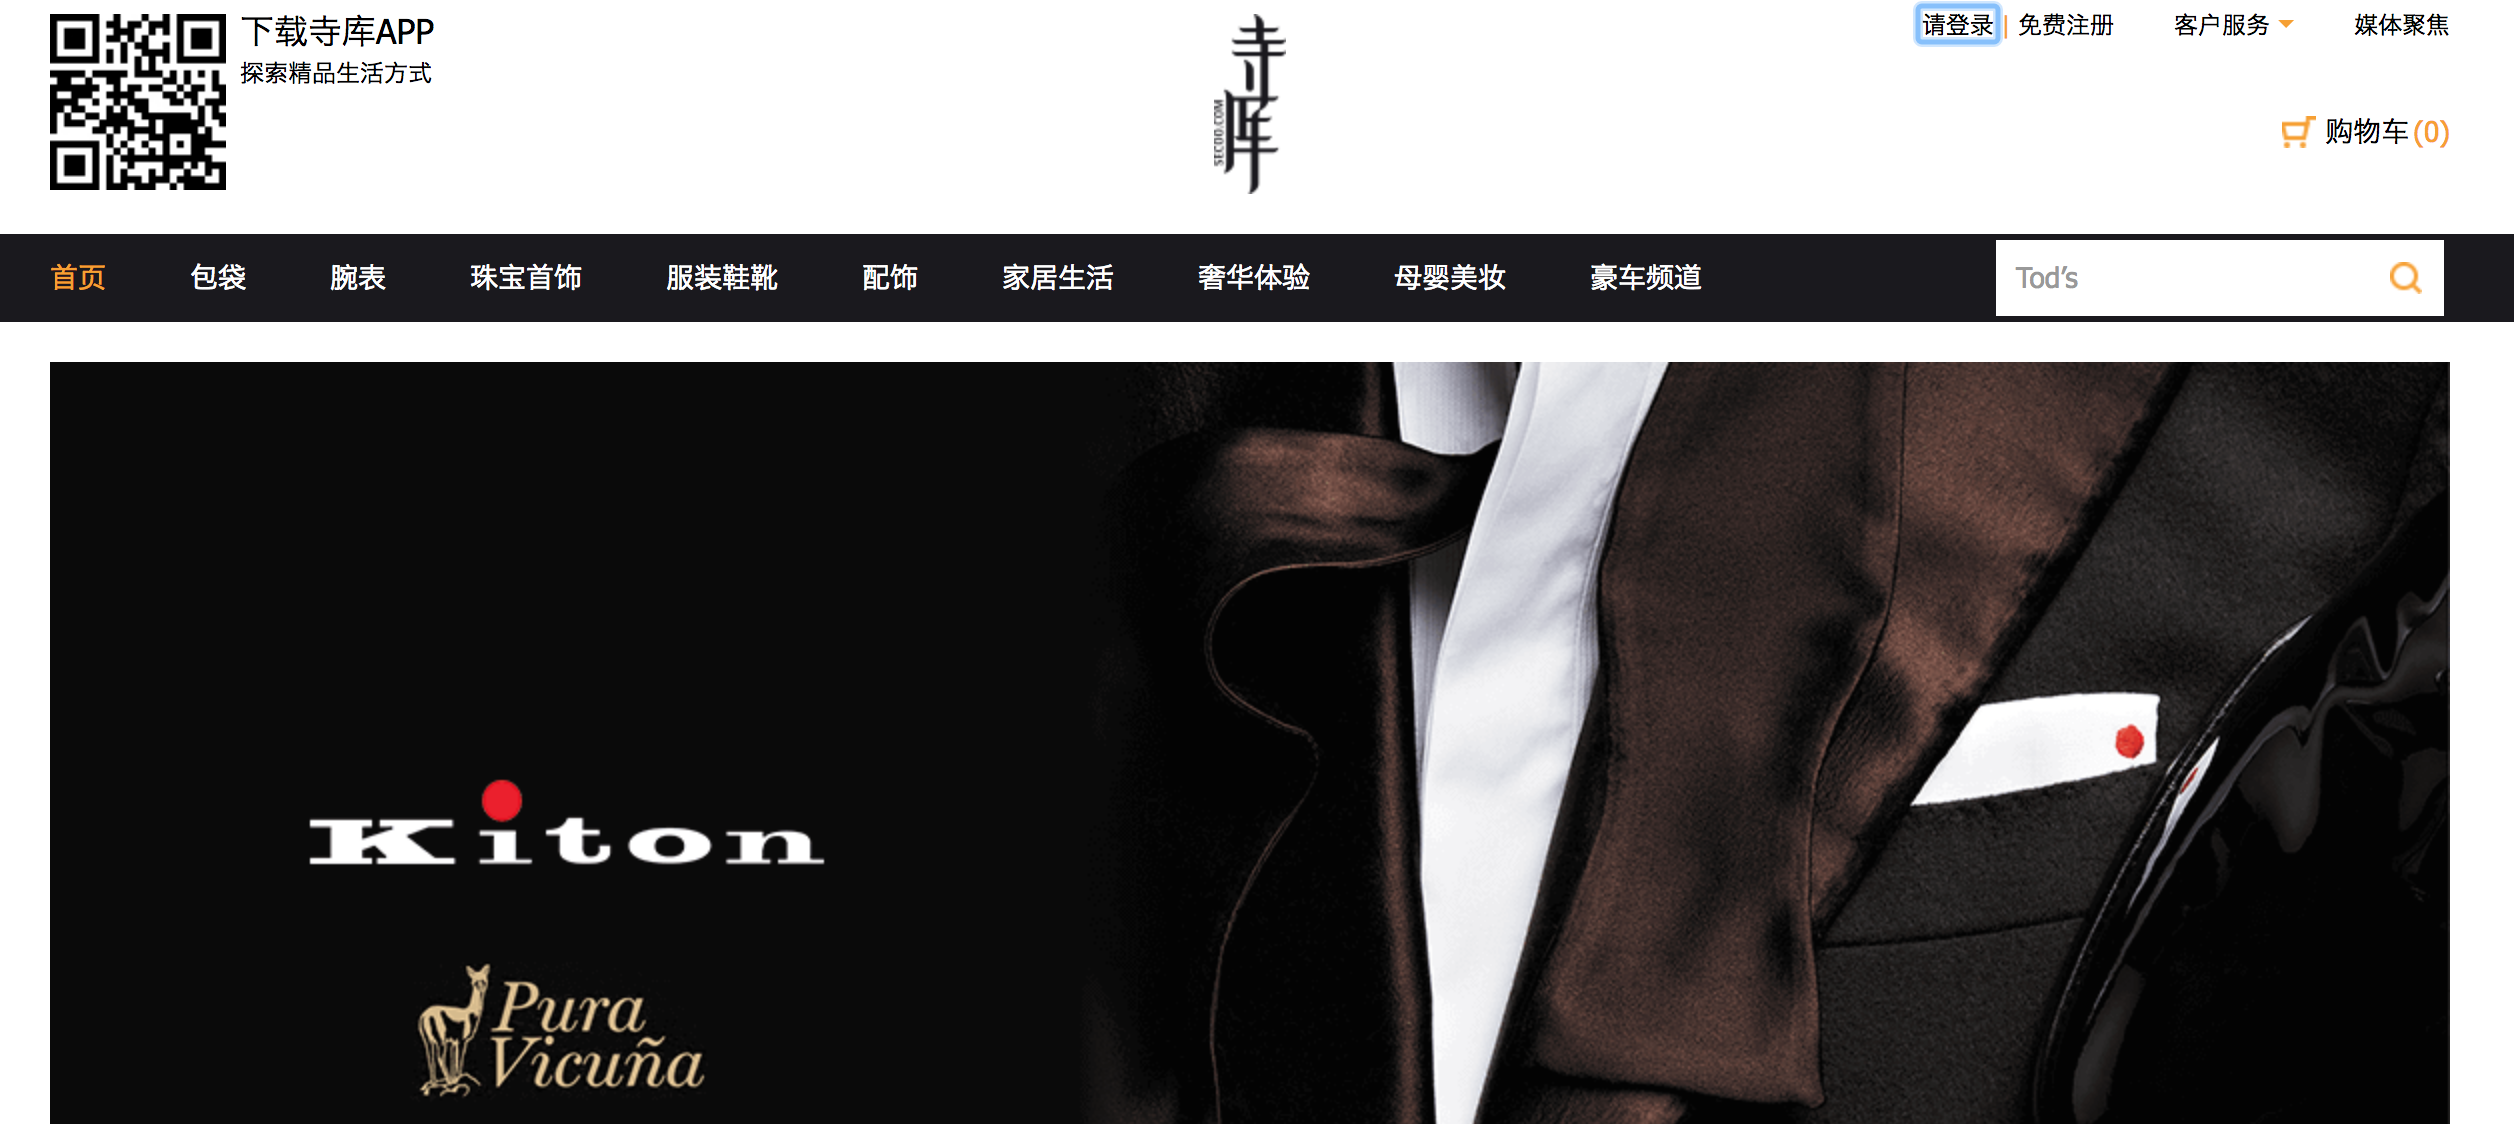 A screenshot from the homepage of luxury e-commerce platform Secoo.com